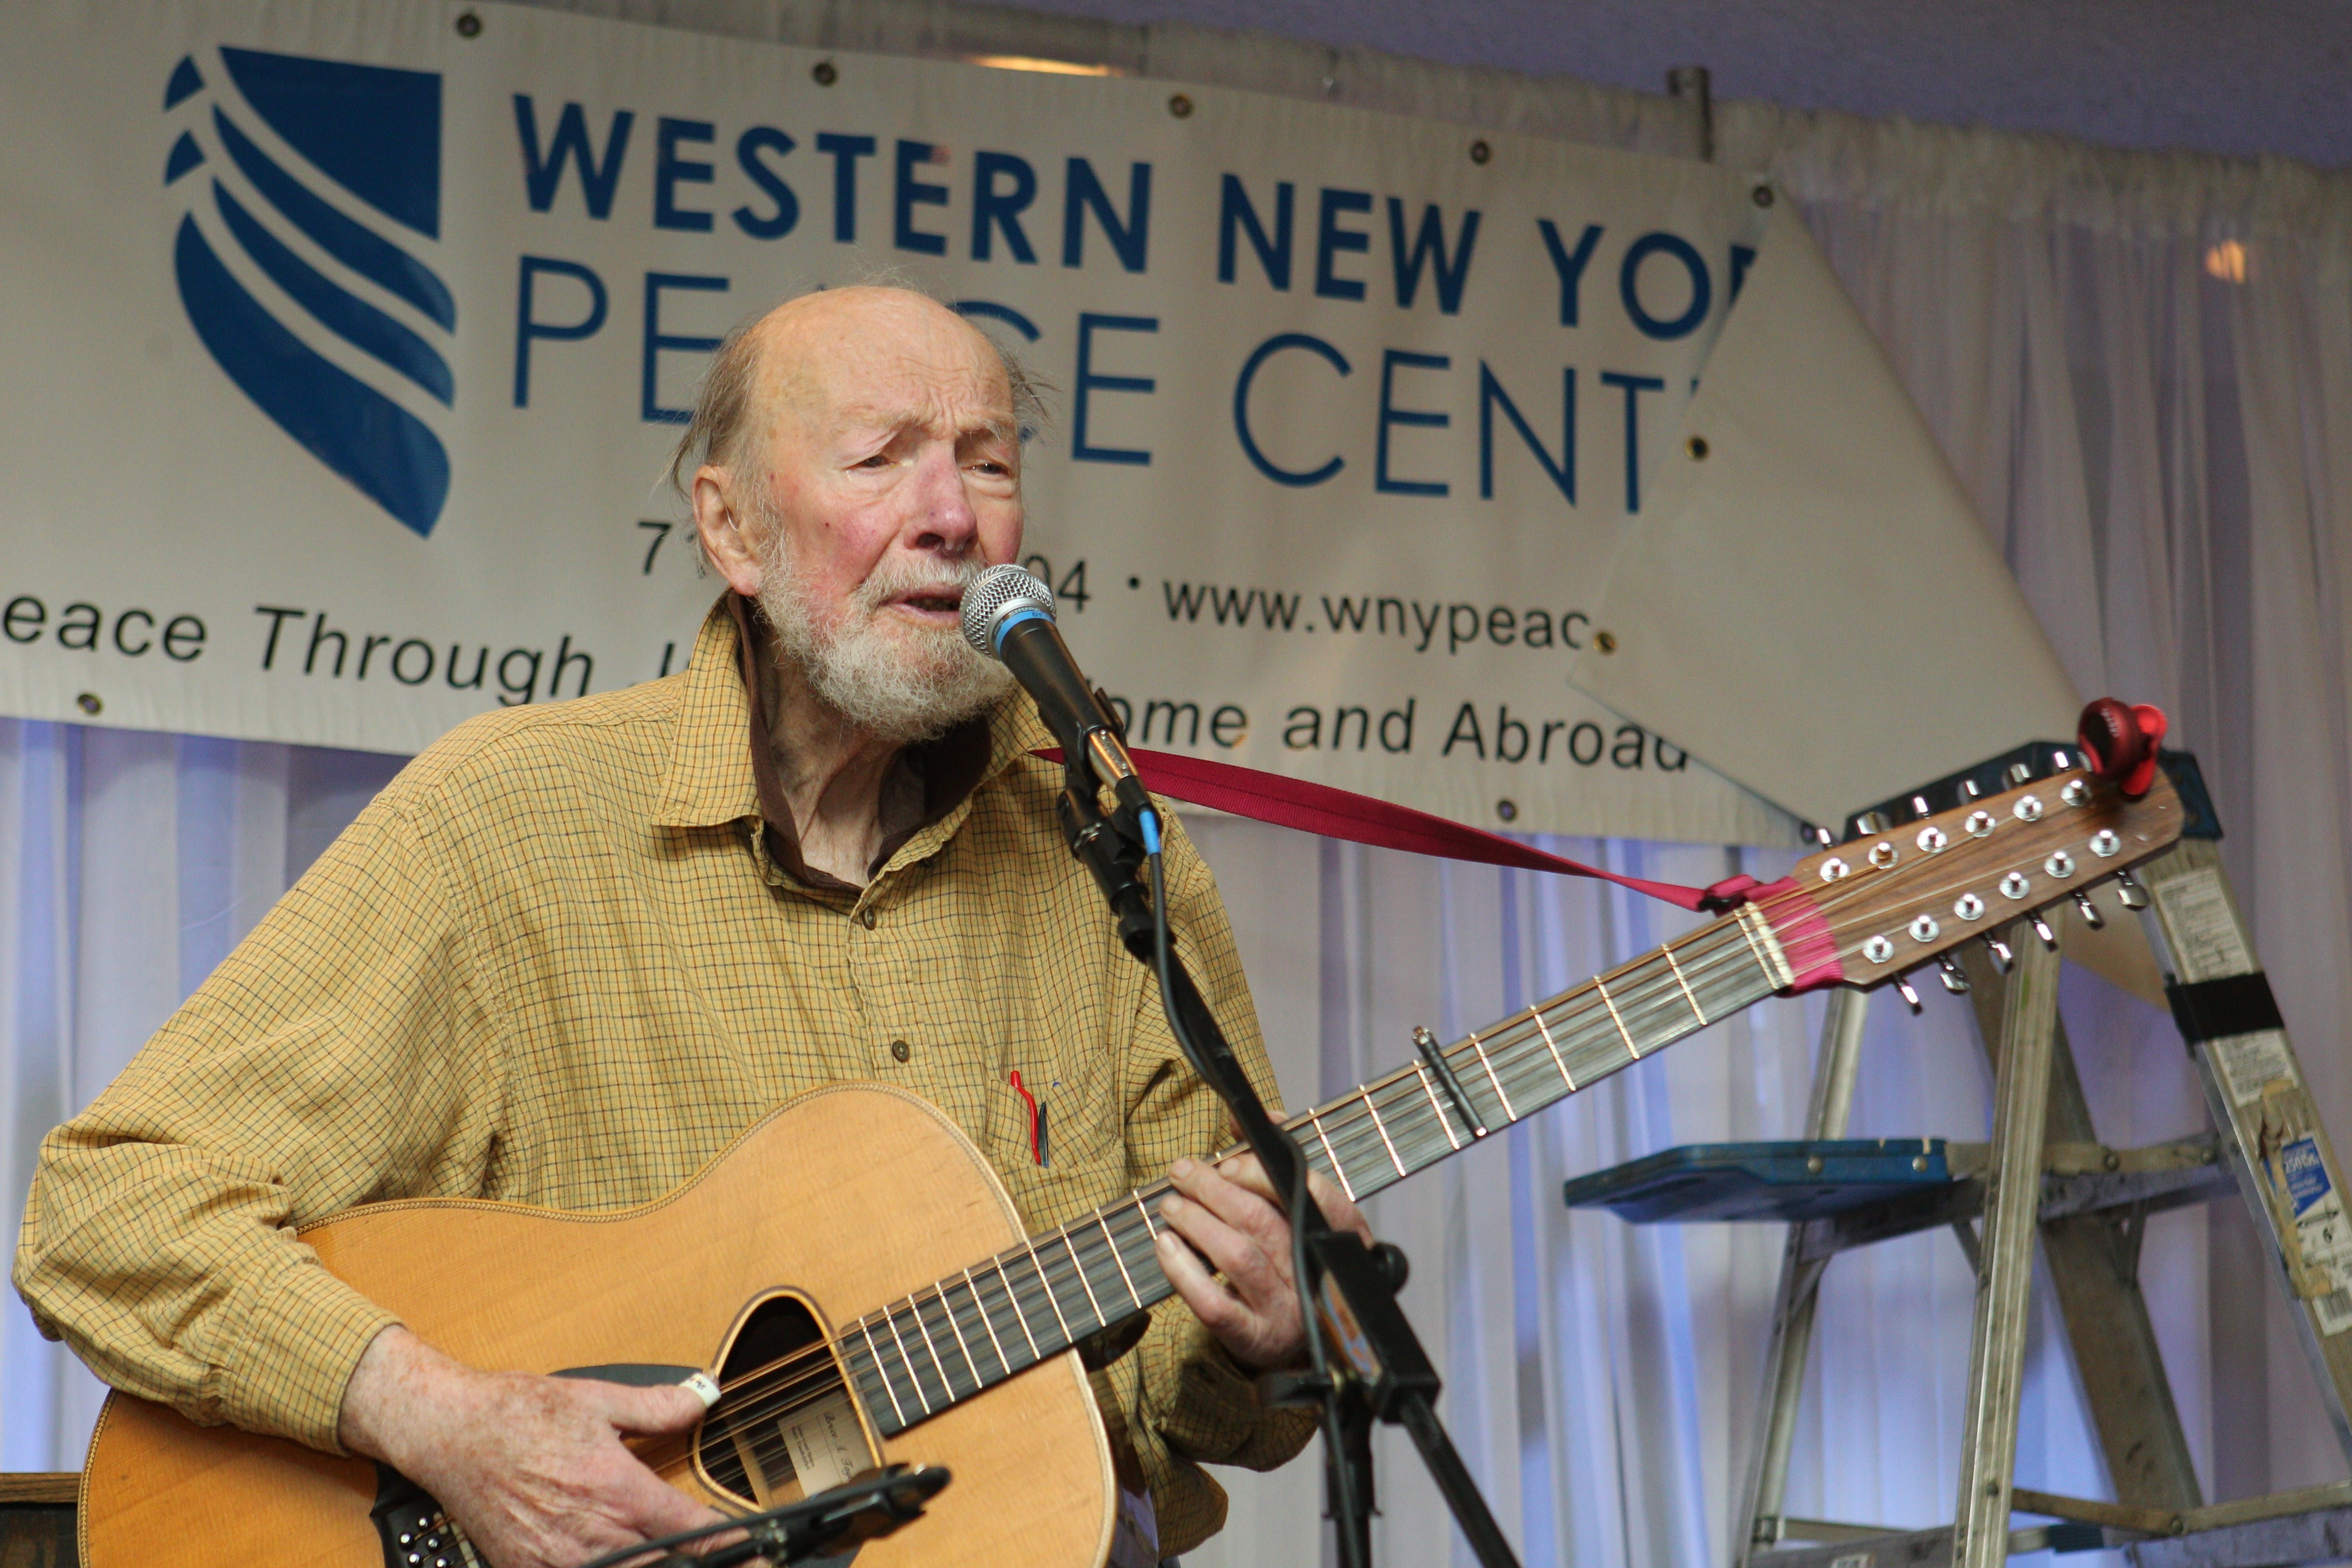 Pete Seeger, still active at 94, performed at the annual fundraising dinner of the Western New York Peace Center at the Buffalo Niagara Convention Center Saturday. He also made stops at the Women in Black vigil and a regional conference of the Newspaper Guild.